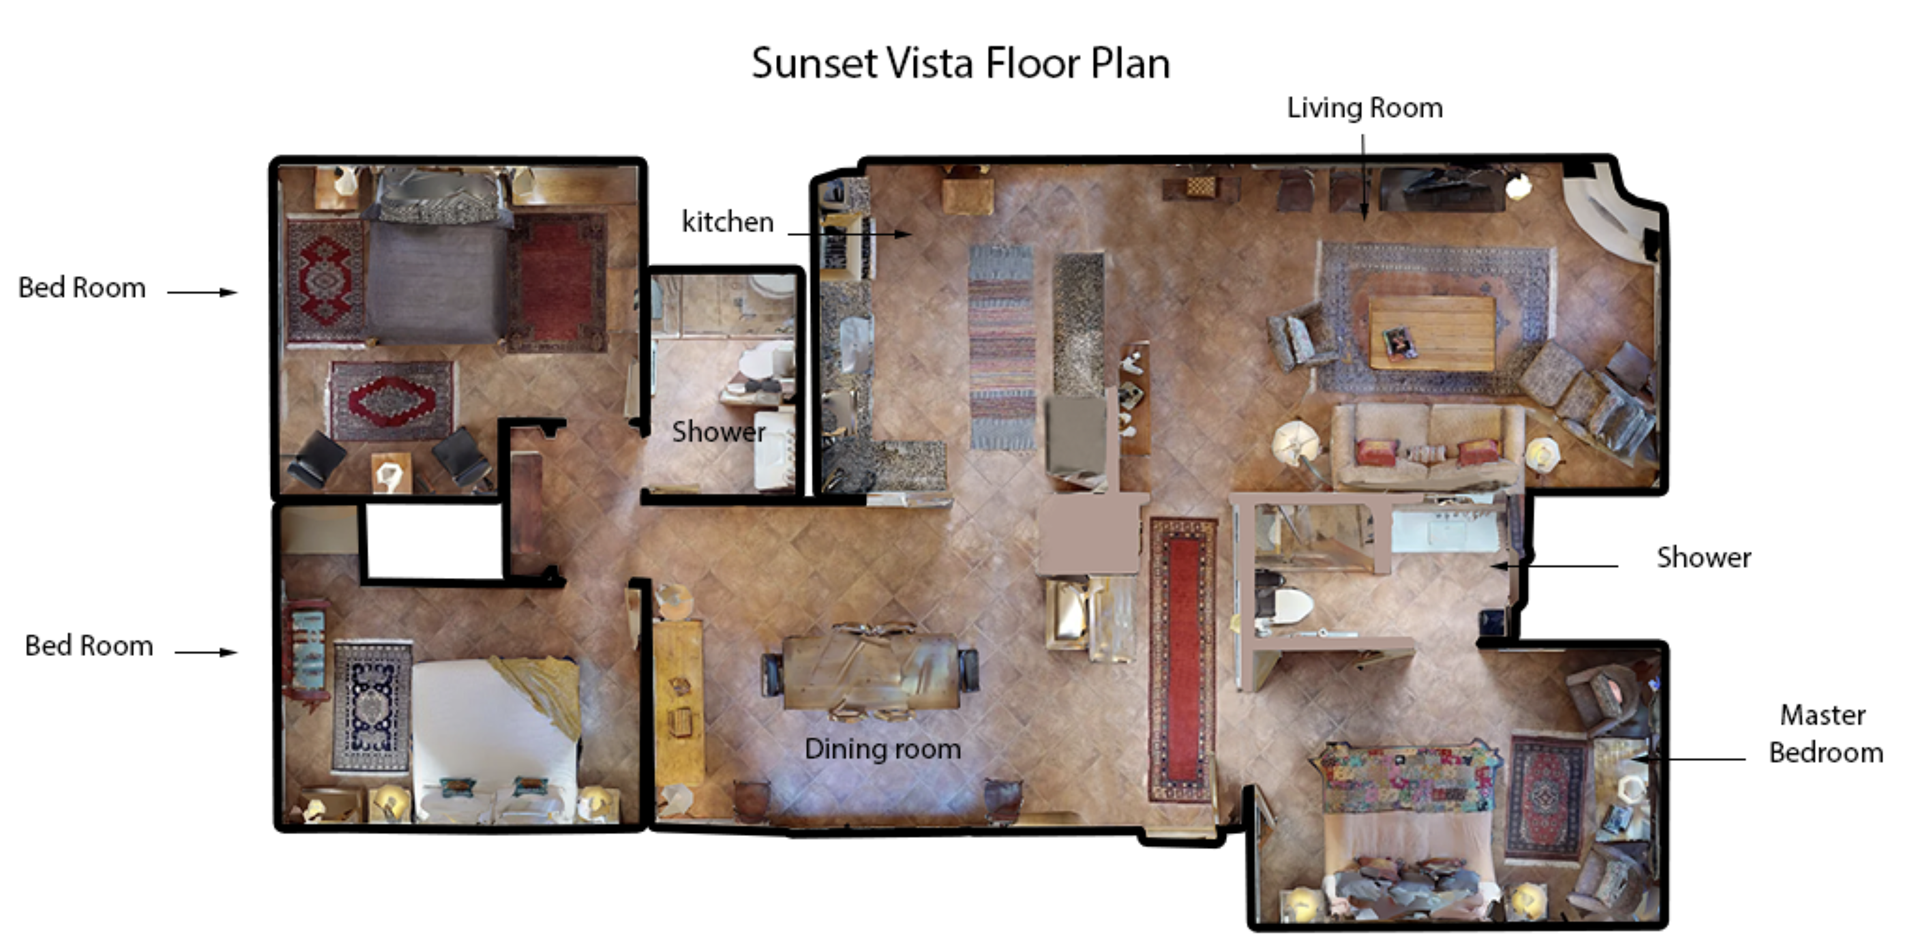 Floor Plan for Sunset Vista